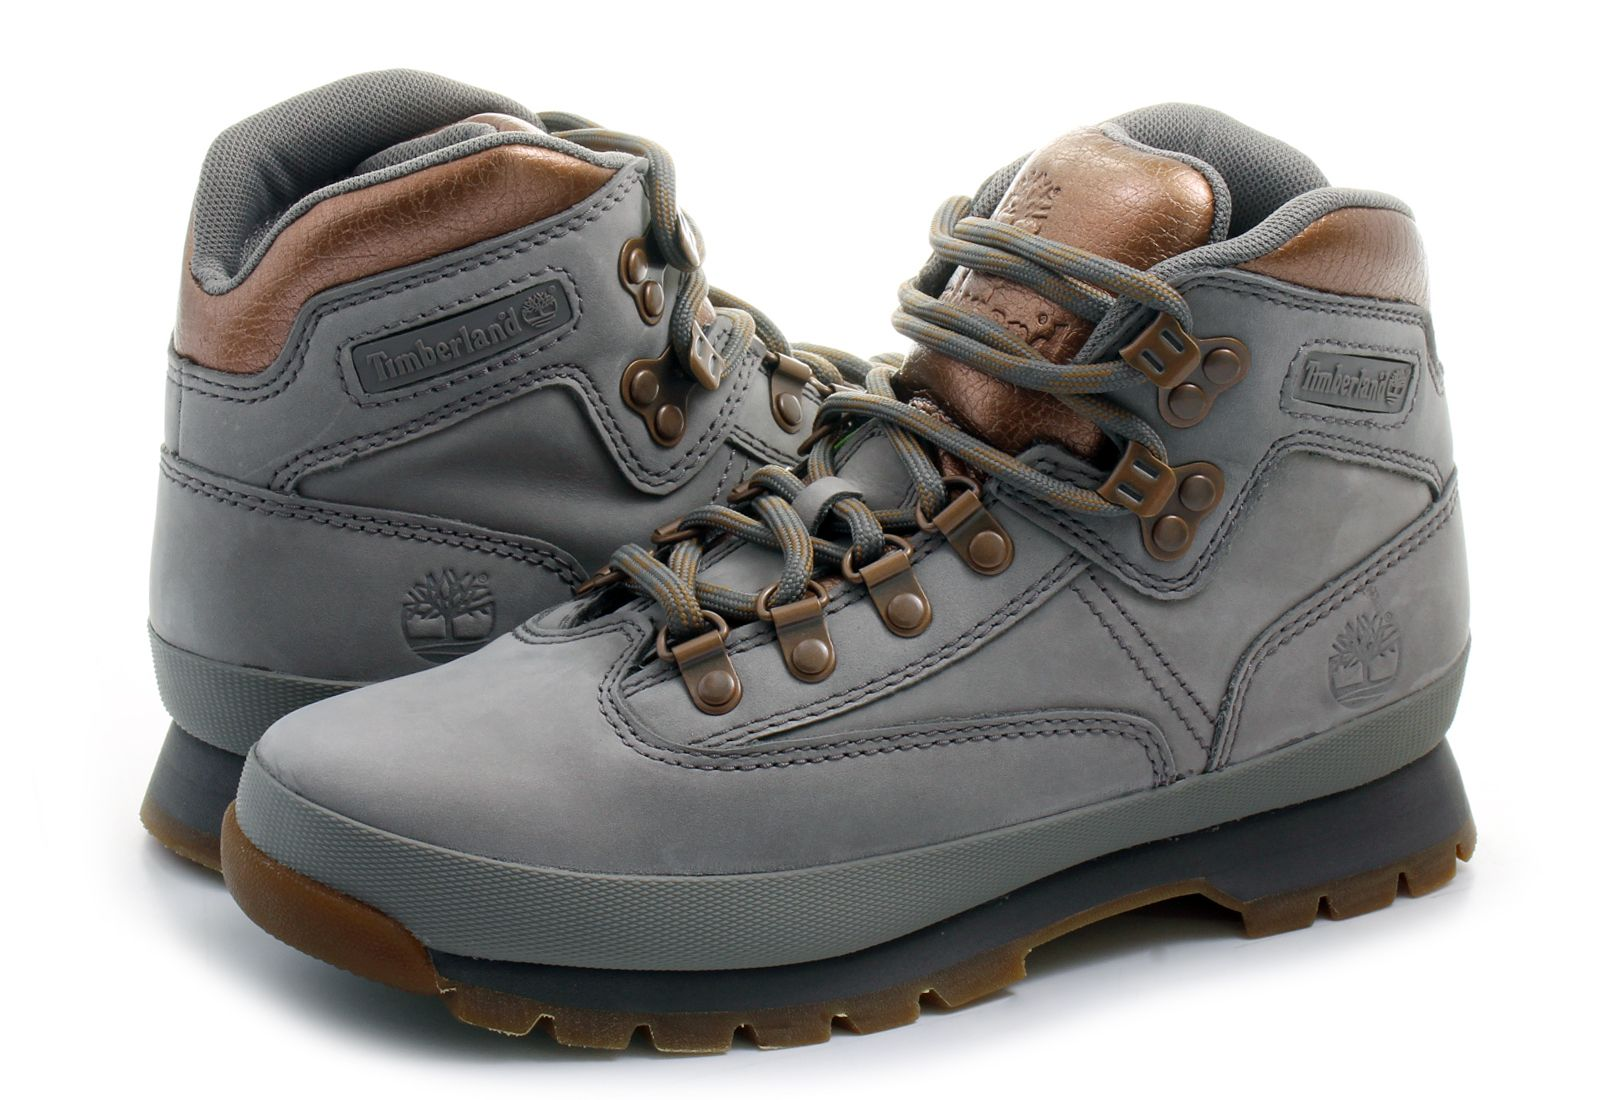 Timberland Topánky - Euro Hiker - A1G8L-gry - Tenisky b270caf8d04